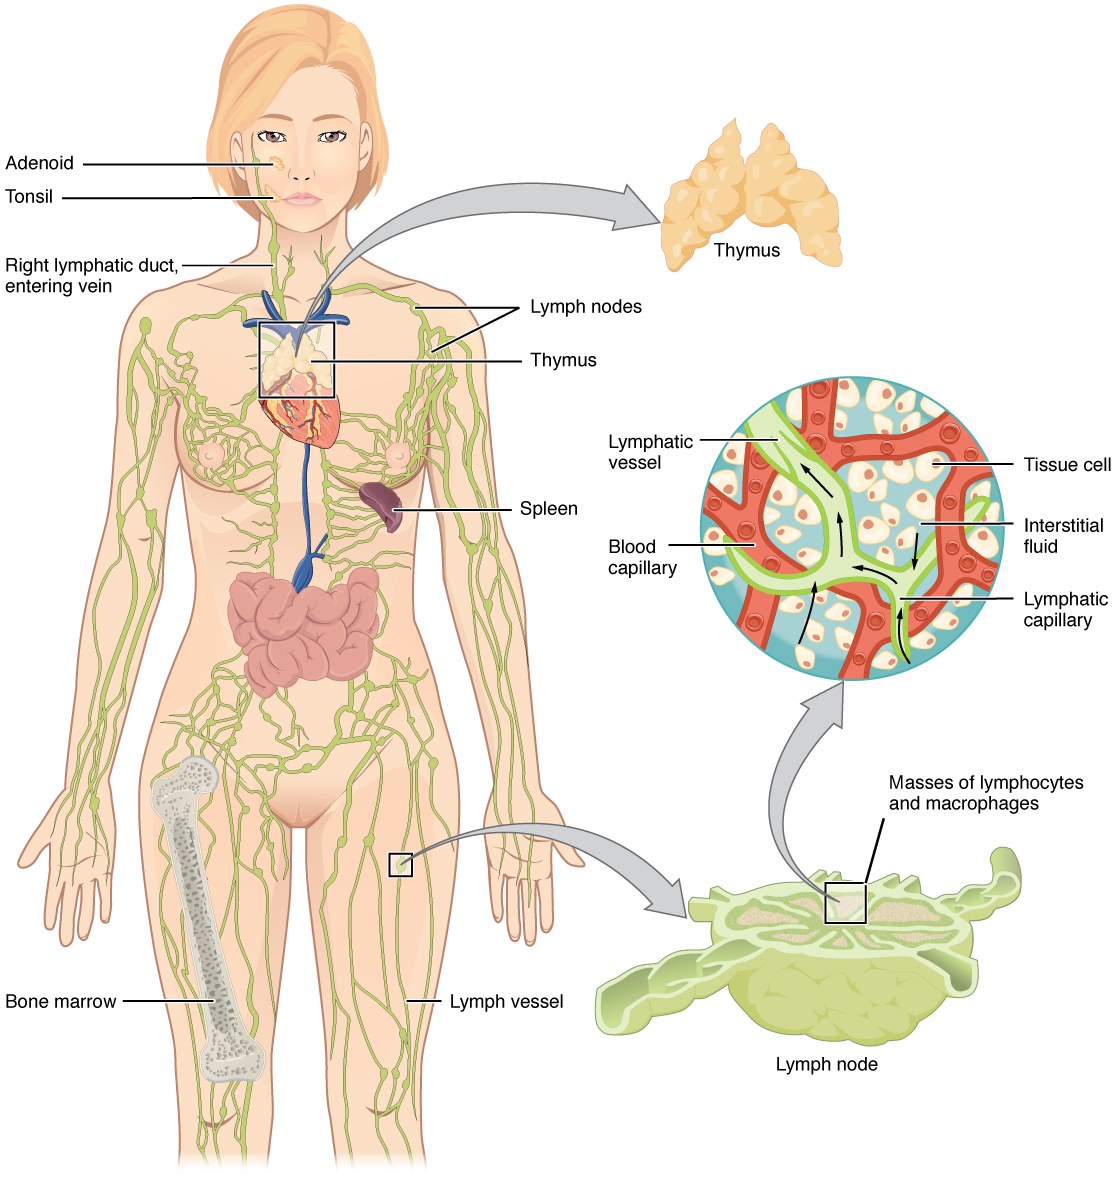 21 1 Anatomy Of The Lymphatic And Immune Systems Anatomy